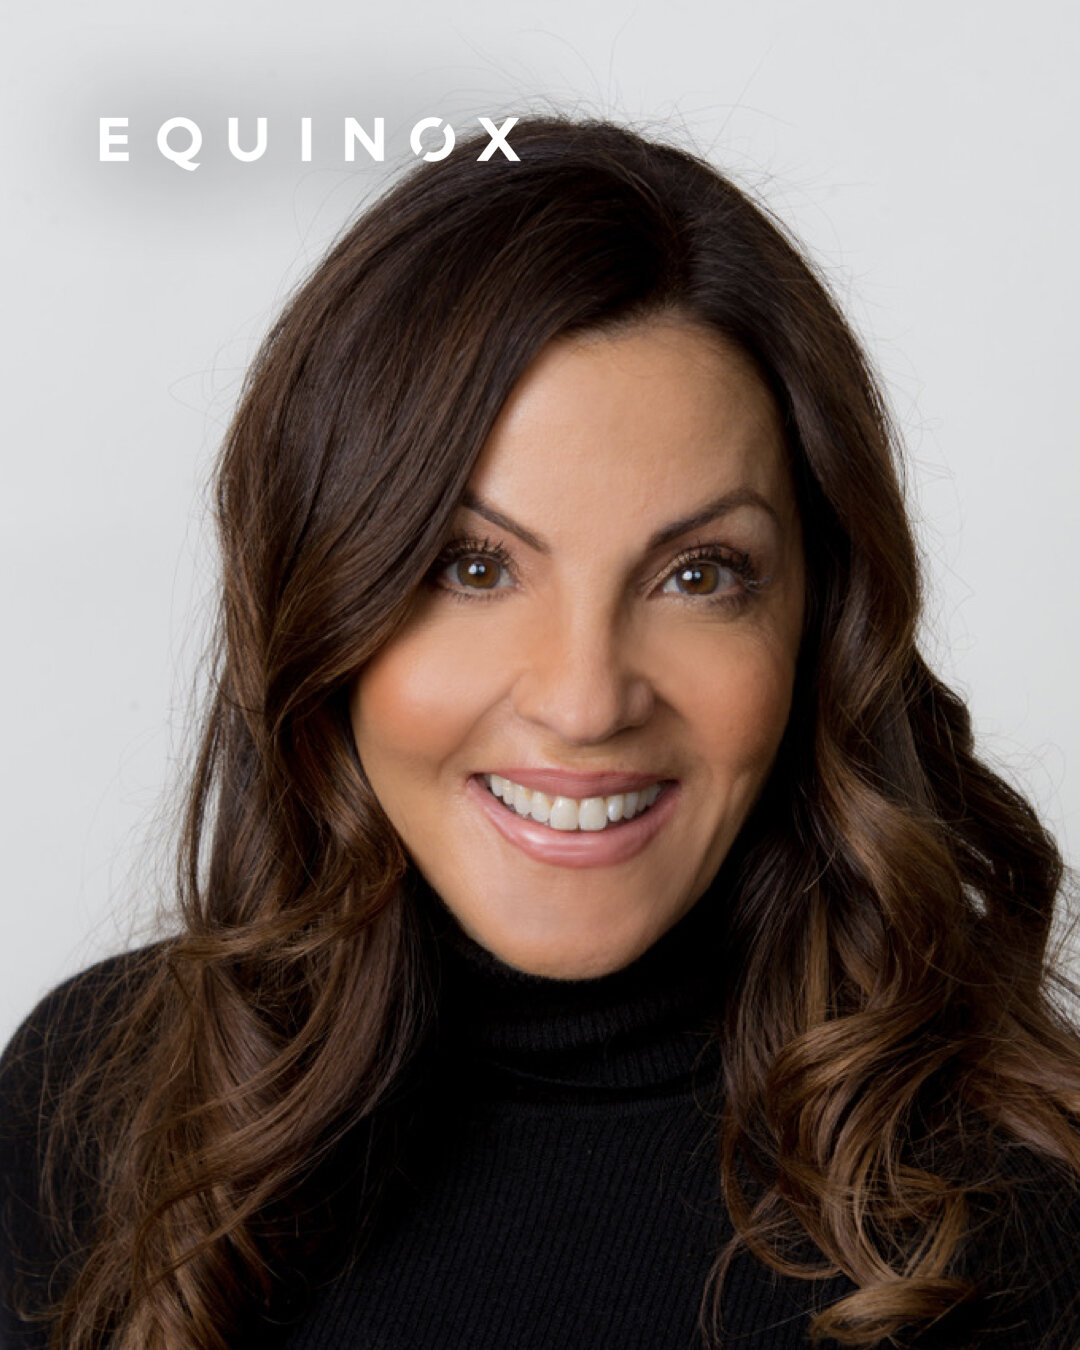 Lavinia Errico, Founder, Equinox Fitness Club - Lavinia Errico, the visionary founder behind Equinox Fitness Clubs and the Inside Out Movement, is a nationally acclaimed workplace and wellness entrepreneur and a speaker of essential truths on the subjects of Values-Driven Entrepreneurship, Developing Next Generation Leadership, The Women Led Workplace, Spiritual Entrepreneurship, Keeping the Soul in Success, The Habits of Success, Building Your Brand, Culture Shifts, and Joy in the Hustle. A sought after board member, consultant and angel investor in diverse startup companies across a multitude of industries, Errico inspires and transforms individuals and organizations with her unique and often disruptive take on how to create a richer, more authentic, inspiring and joyful career and life journey.